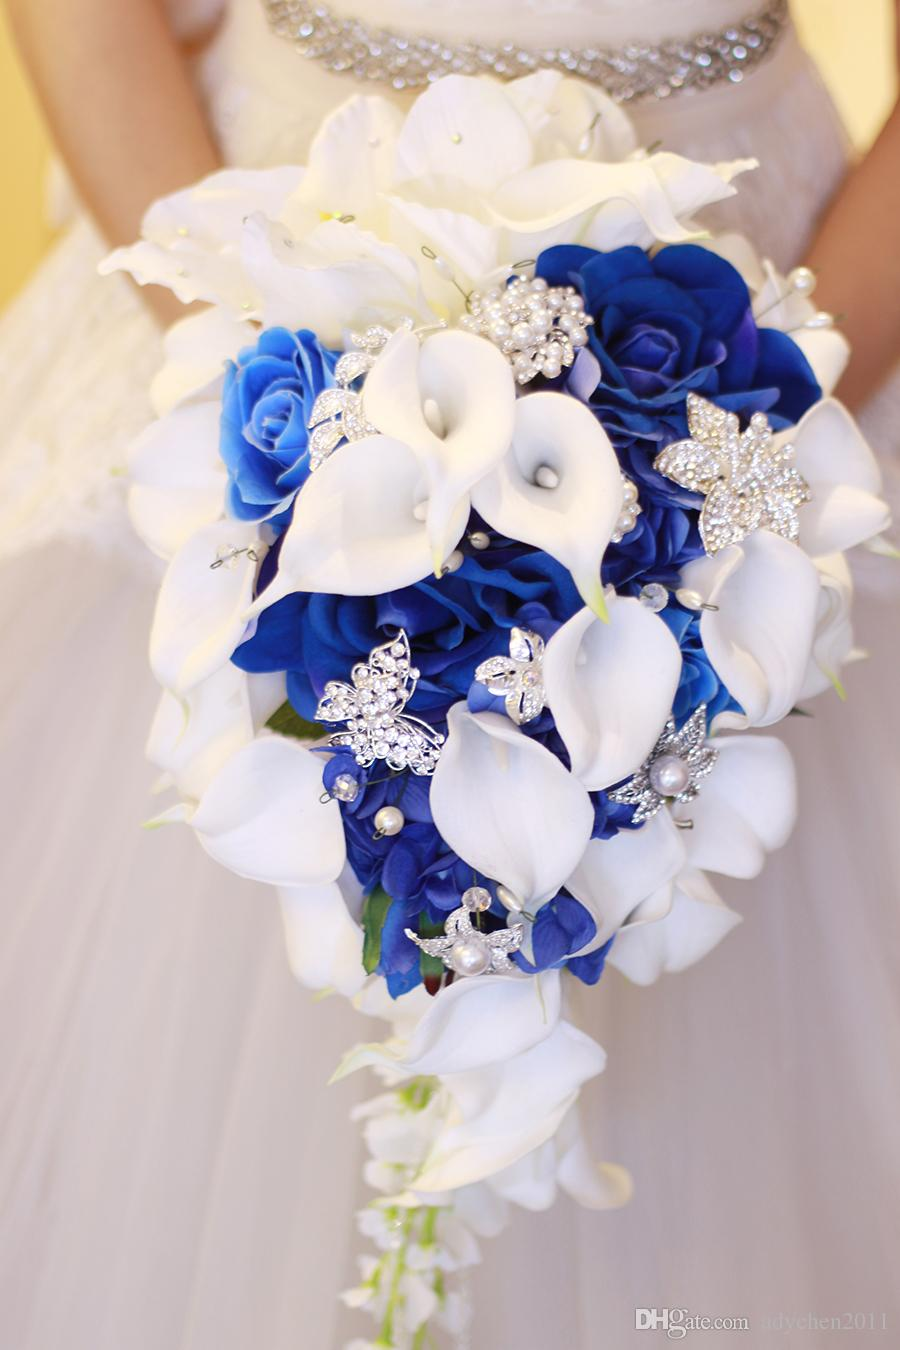 Wedding bouquets royal blue flowers waterfall real touch lily beads wedding bouquets royal blue flowers waterfall real touch lily beads crystals bling roses satin bridal bouquet colors purple yellow fuchsia satin flowers mightylinksfo